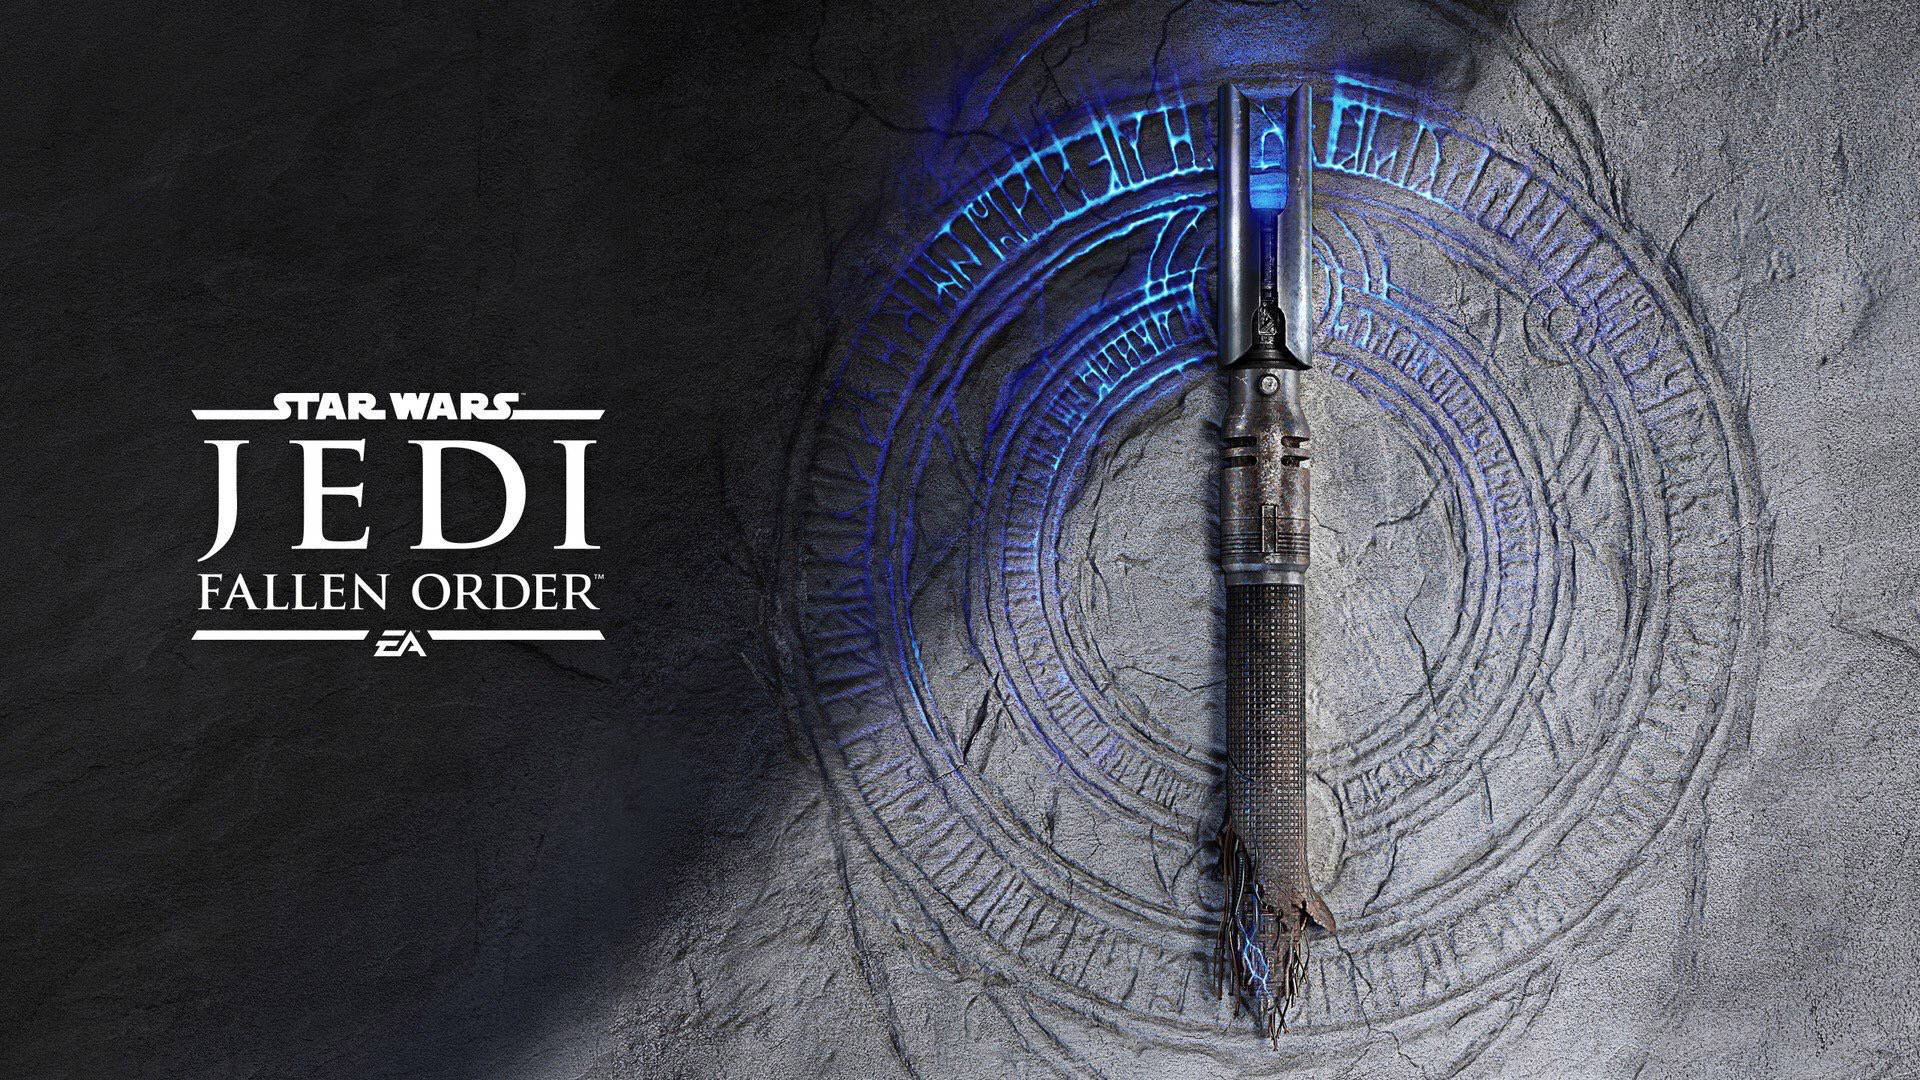 Free Star Wars Jedi Fallen Order Wallpaper In 1920x1080